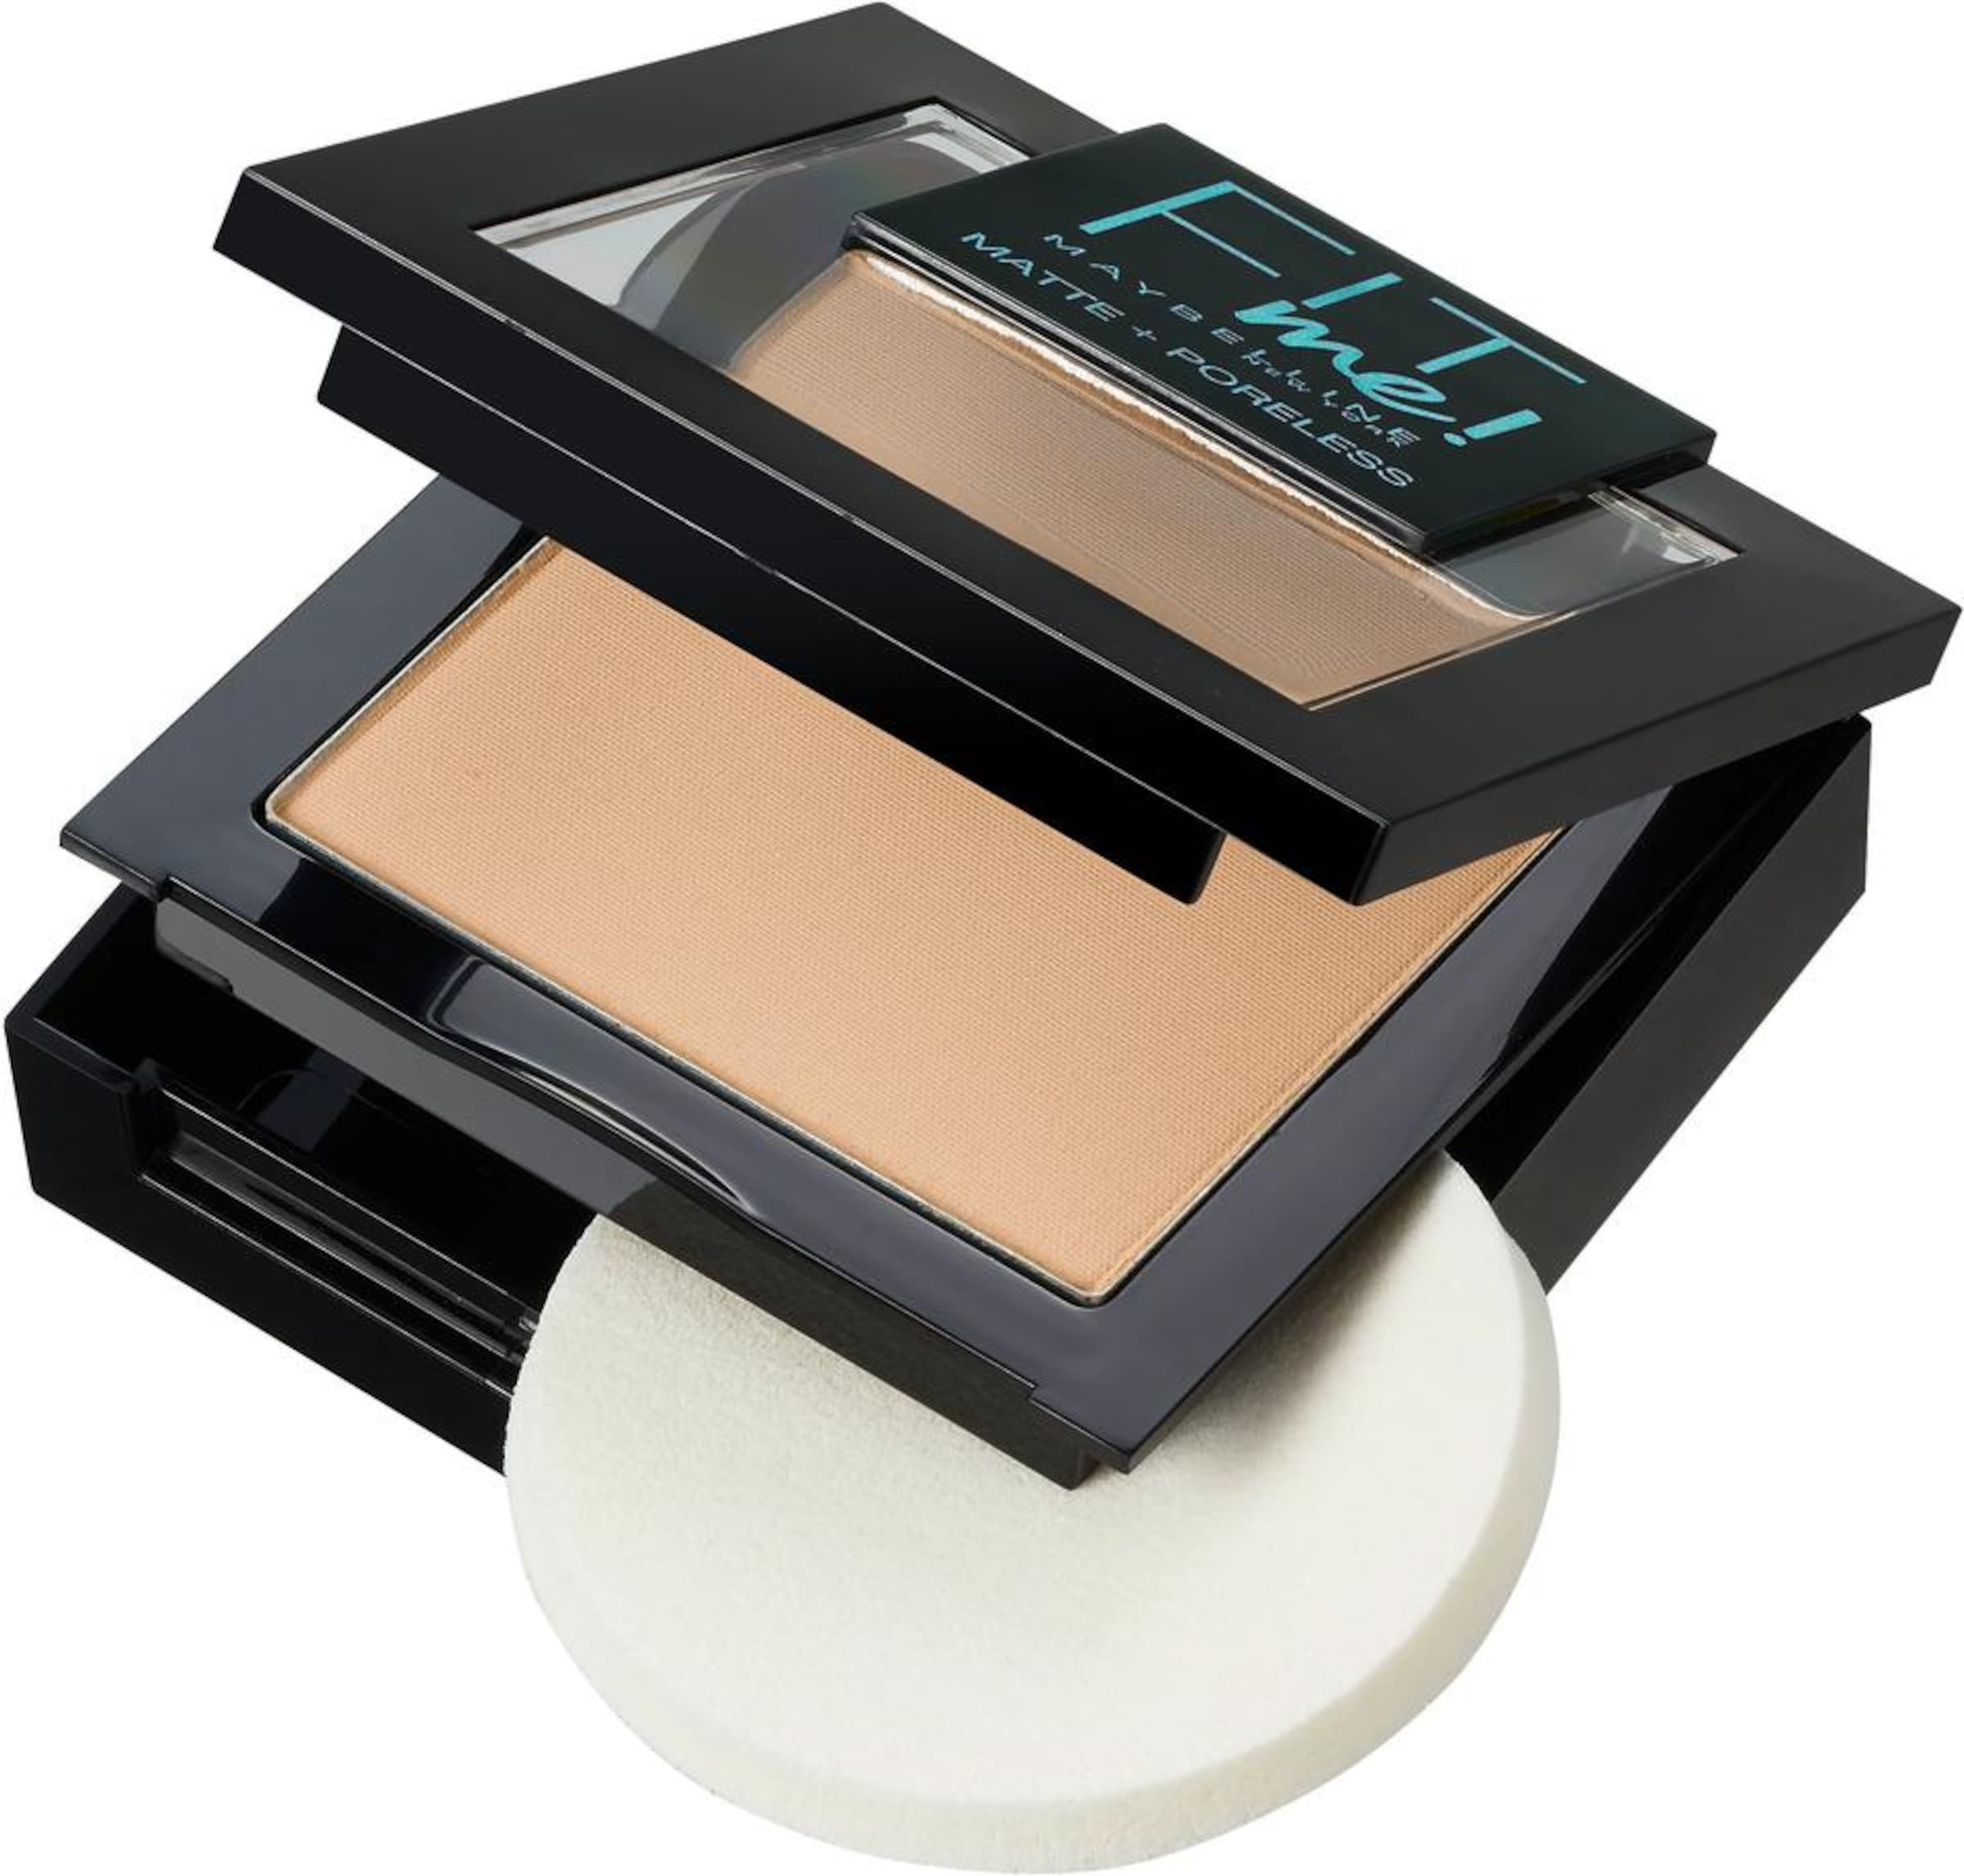 Matt Beige 'fit York New Me Maybelline amp;poreless Powder'Puder In LqMpUGSVz